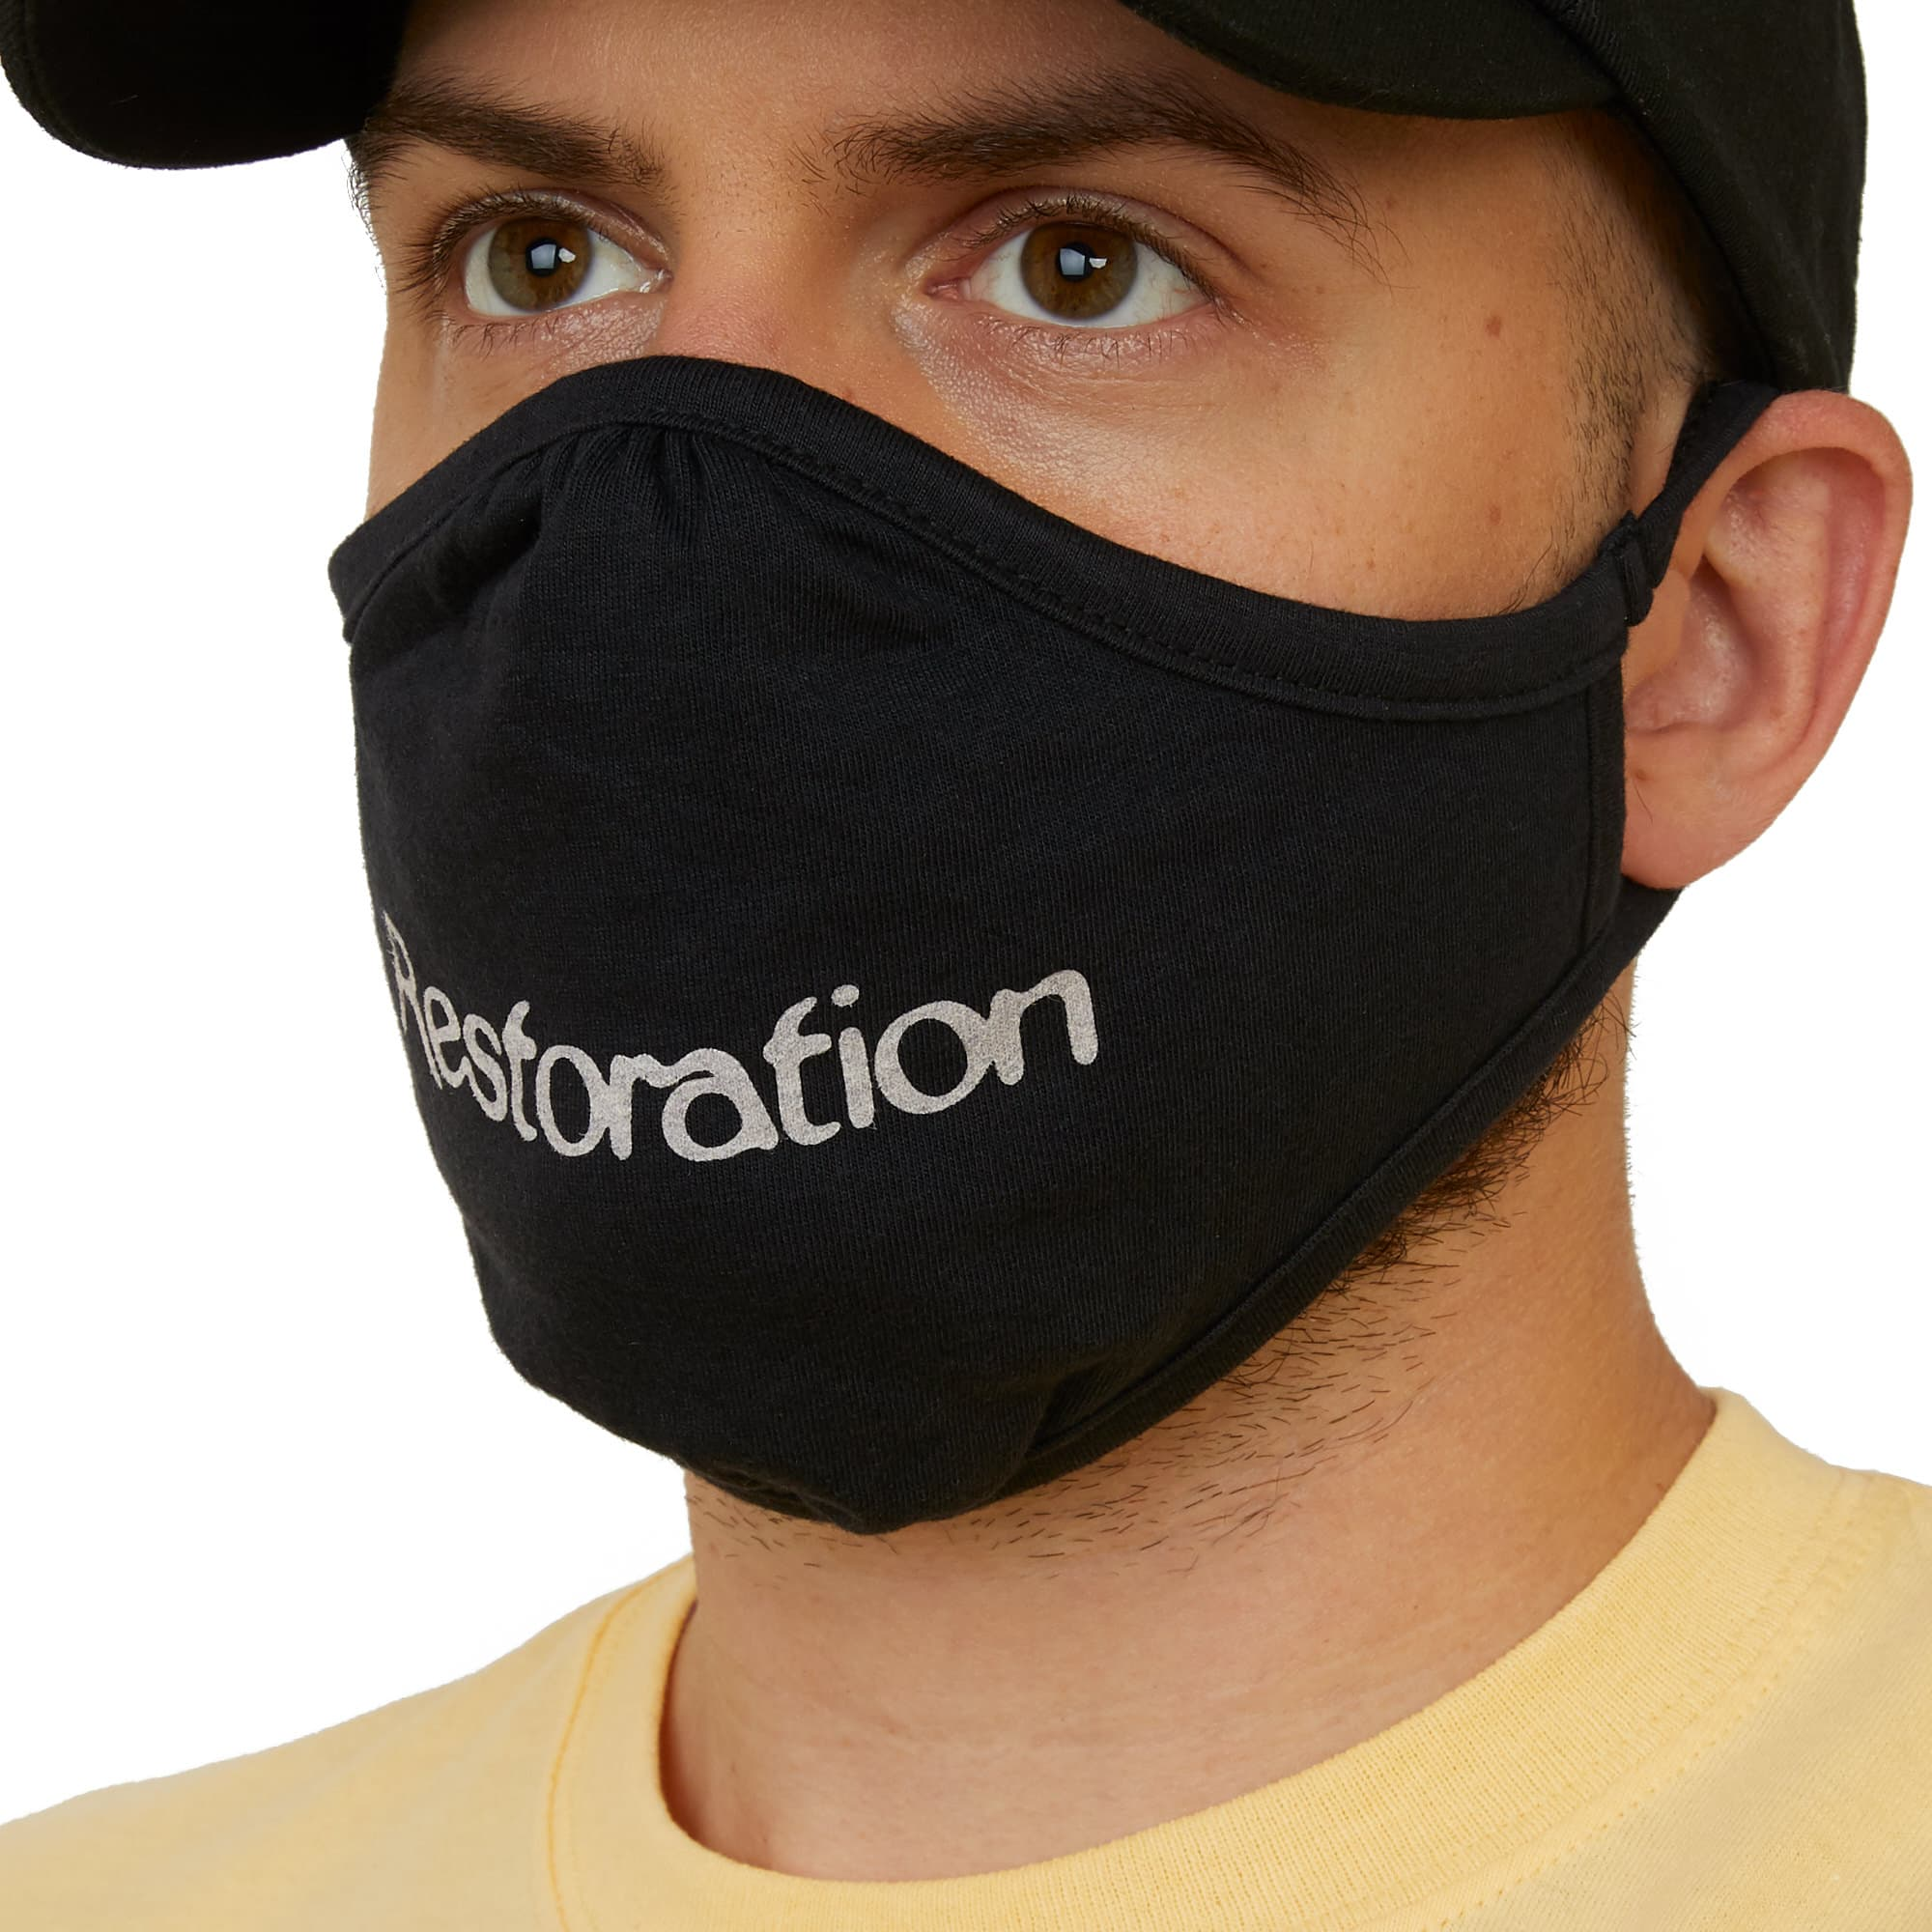 'Restoration' Face Mask